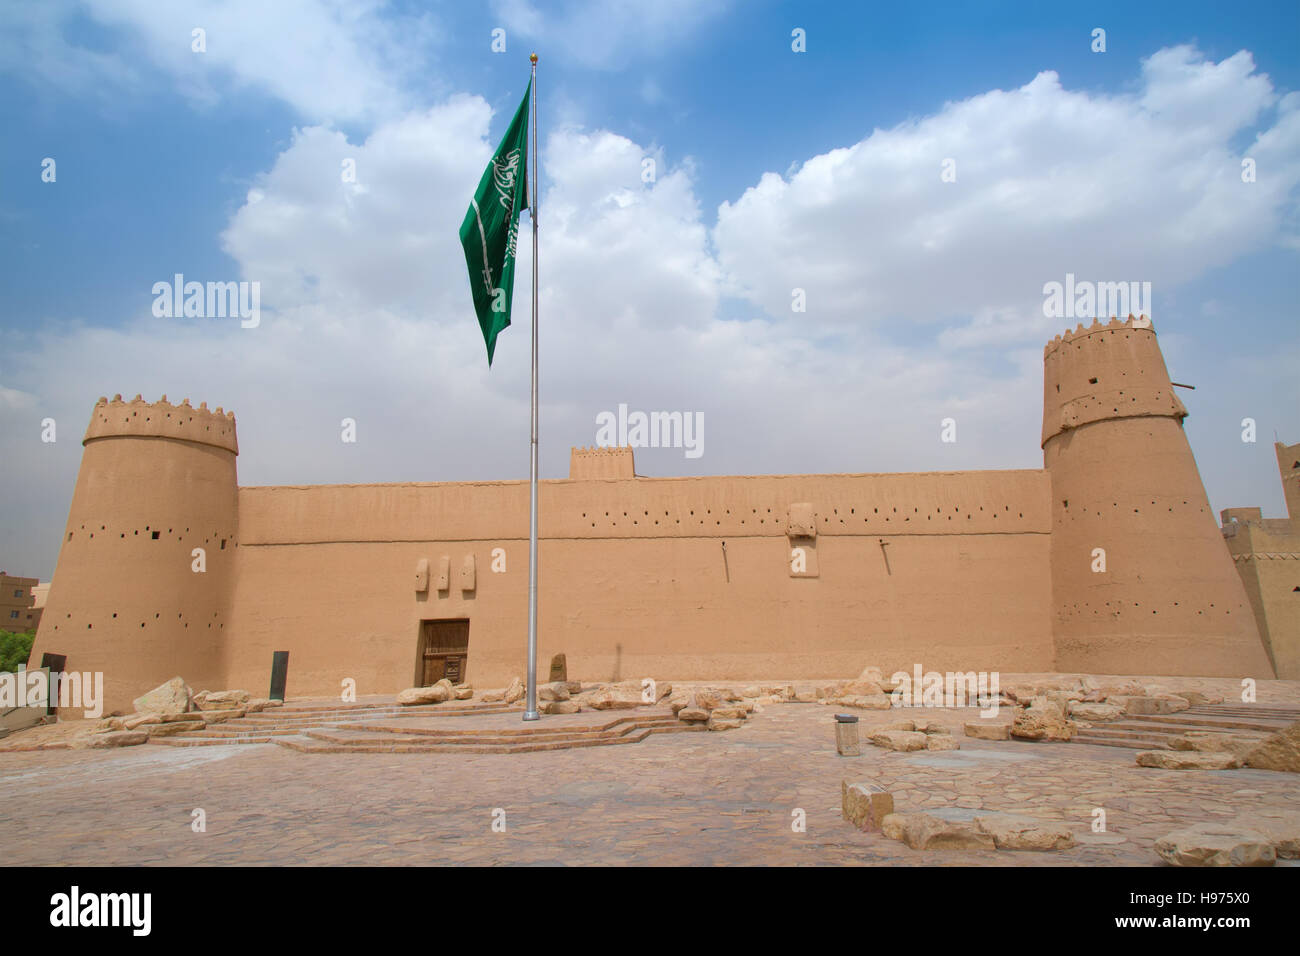 the history of architecture in saudi arabia and the masmak fort In the year 2000, the saudi arabian government established the saudi   1937 discover saudi arabia, aramco, 1969 historical medal, king khalid  najd  architecture l-diriyah was the original home of the saudi royal fam- ily,  trunks,  the museum design, inspired by al- diriyah, al-masmak fortress,.